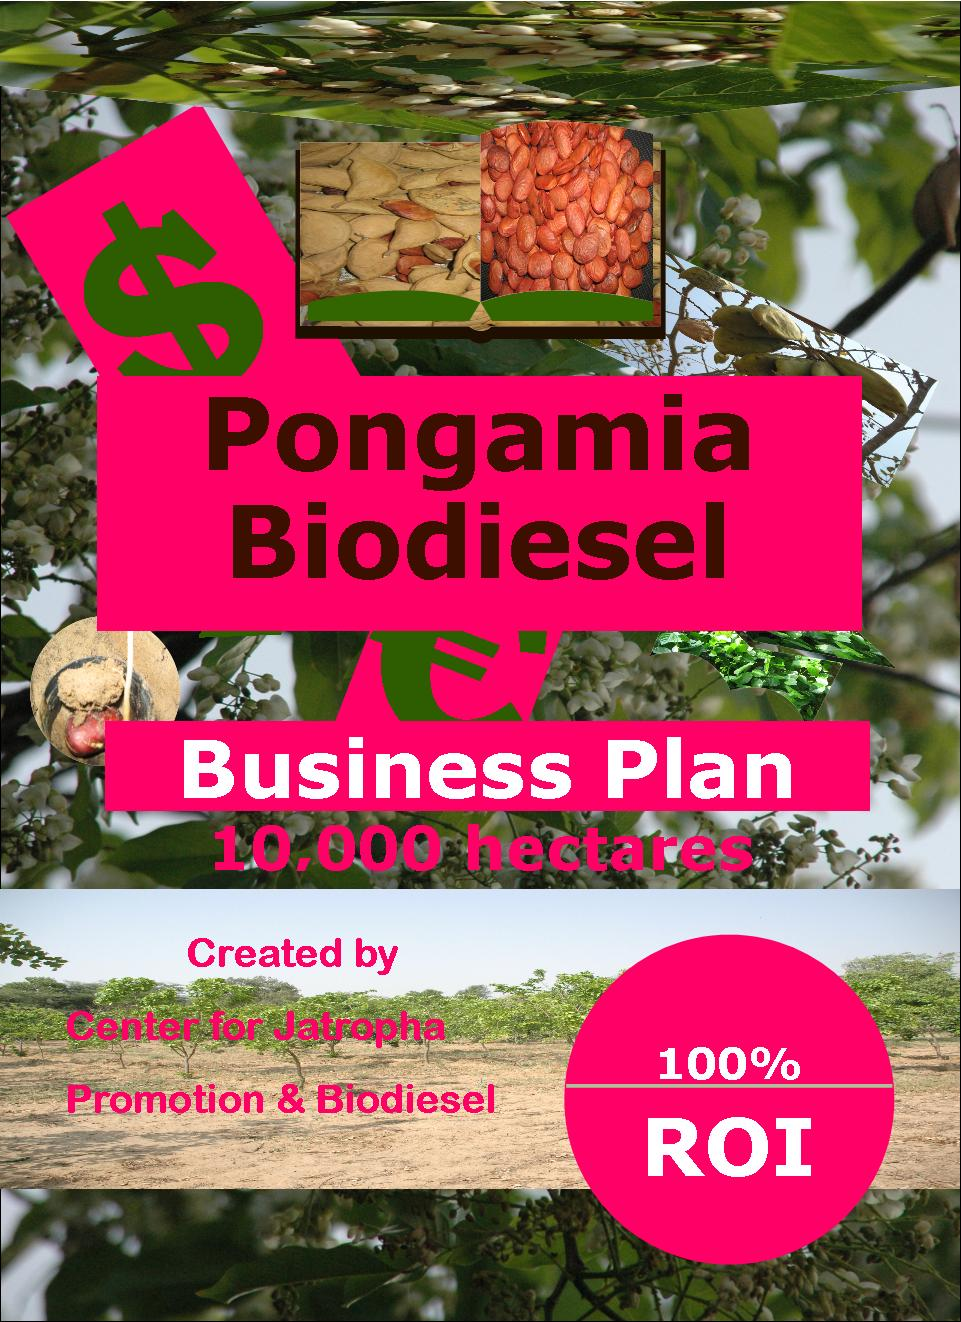 pongamia biodiesel business plan 10000 ha